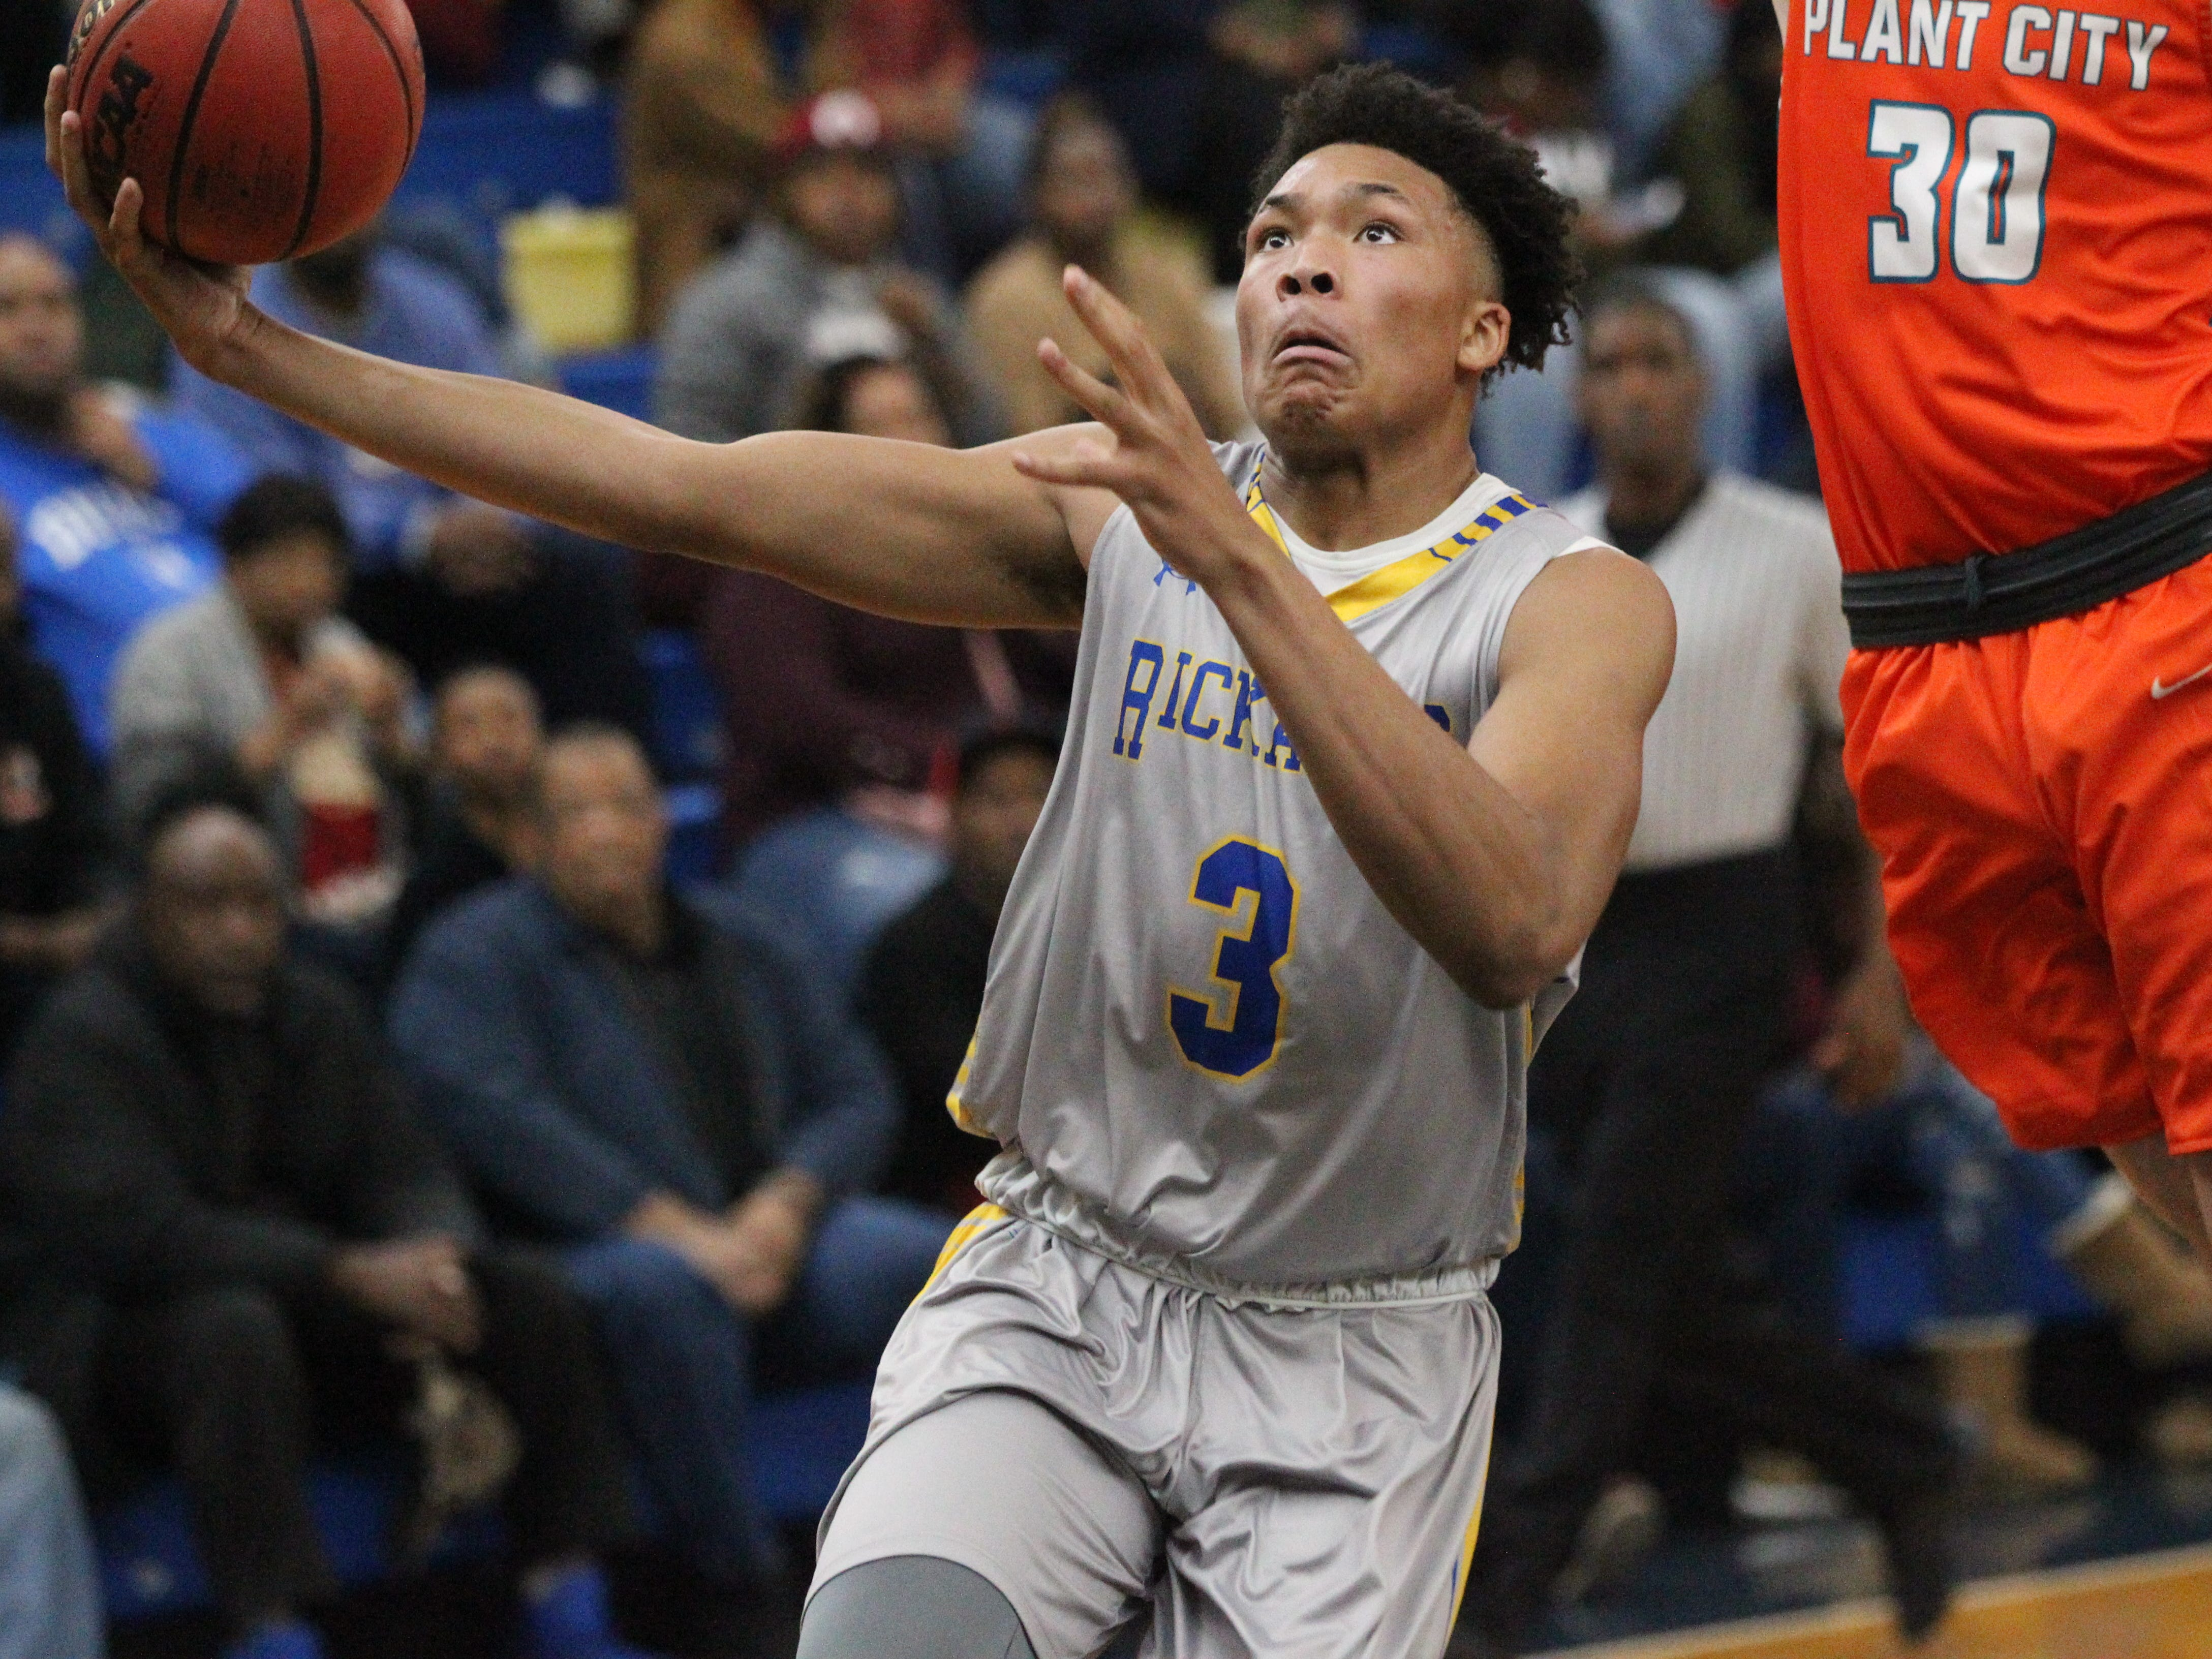 Rickards sophomore Roddrick Henry drives to the basket for a layup during the 2018 Capital City Holiday Classic at TCC.